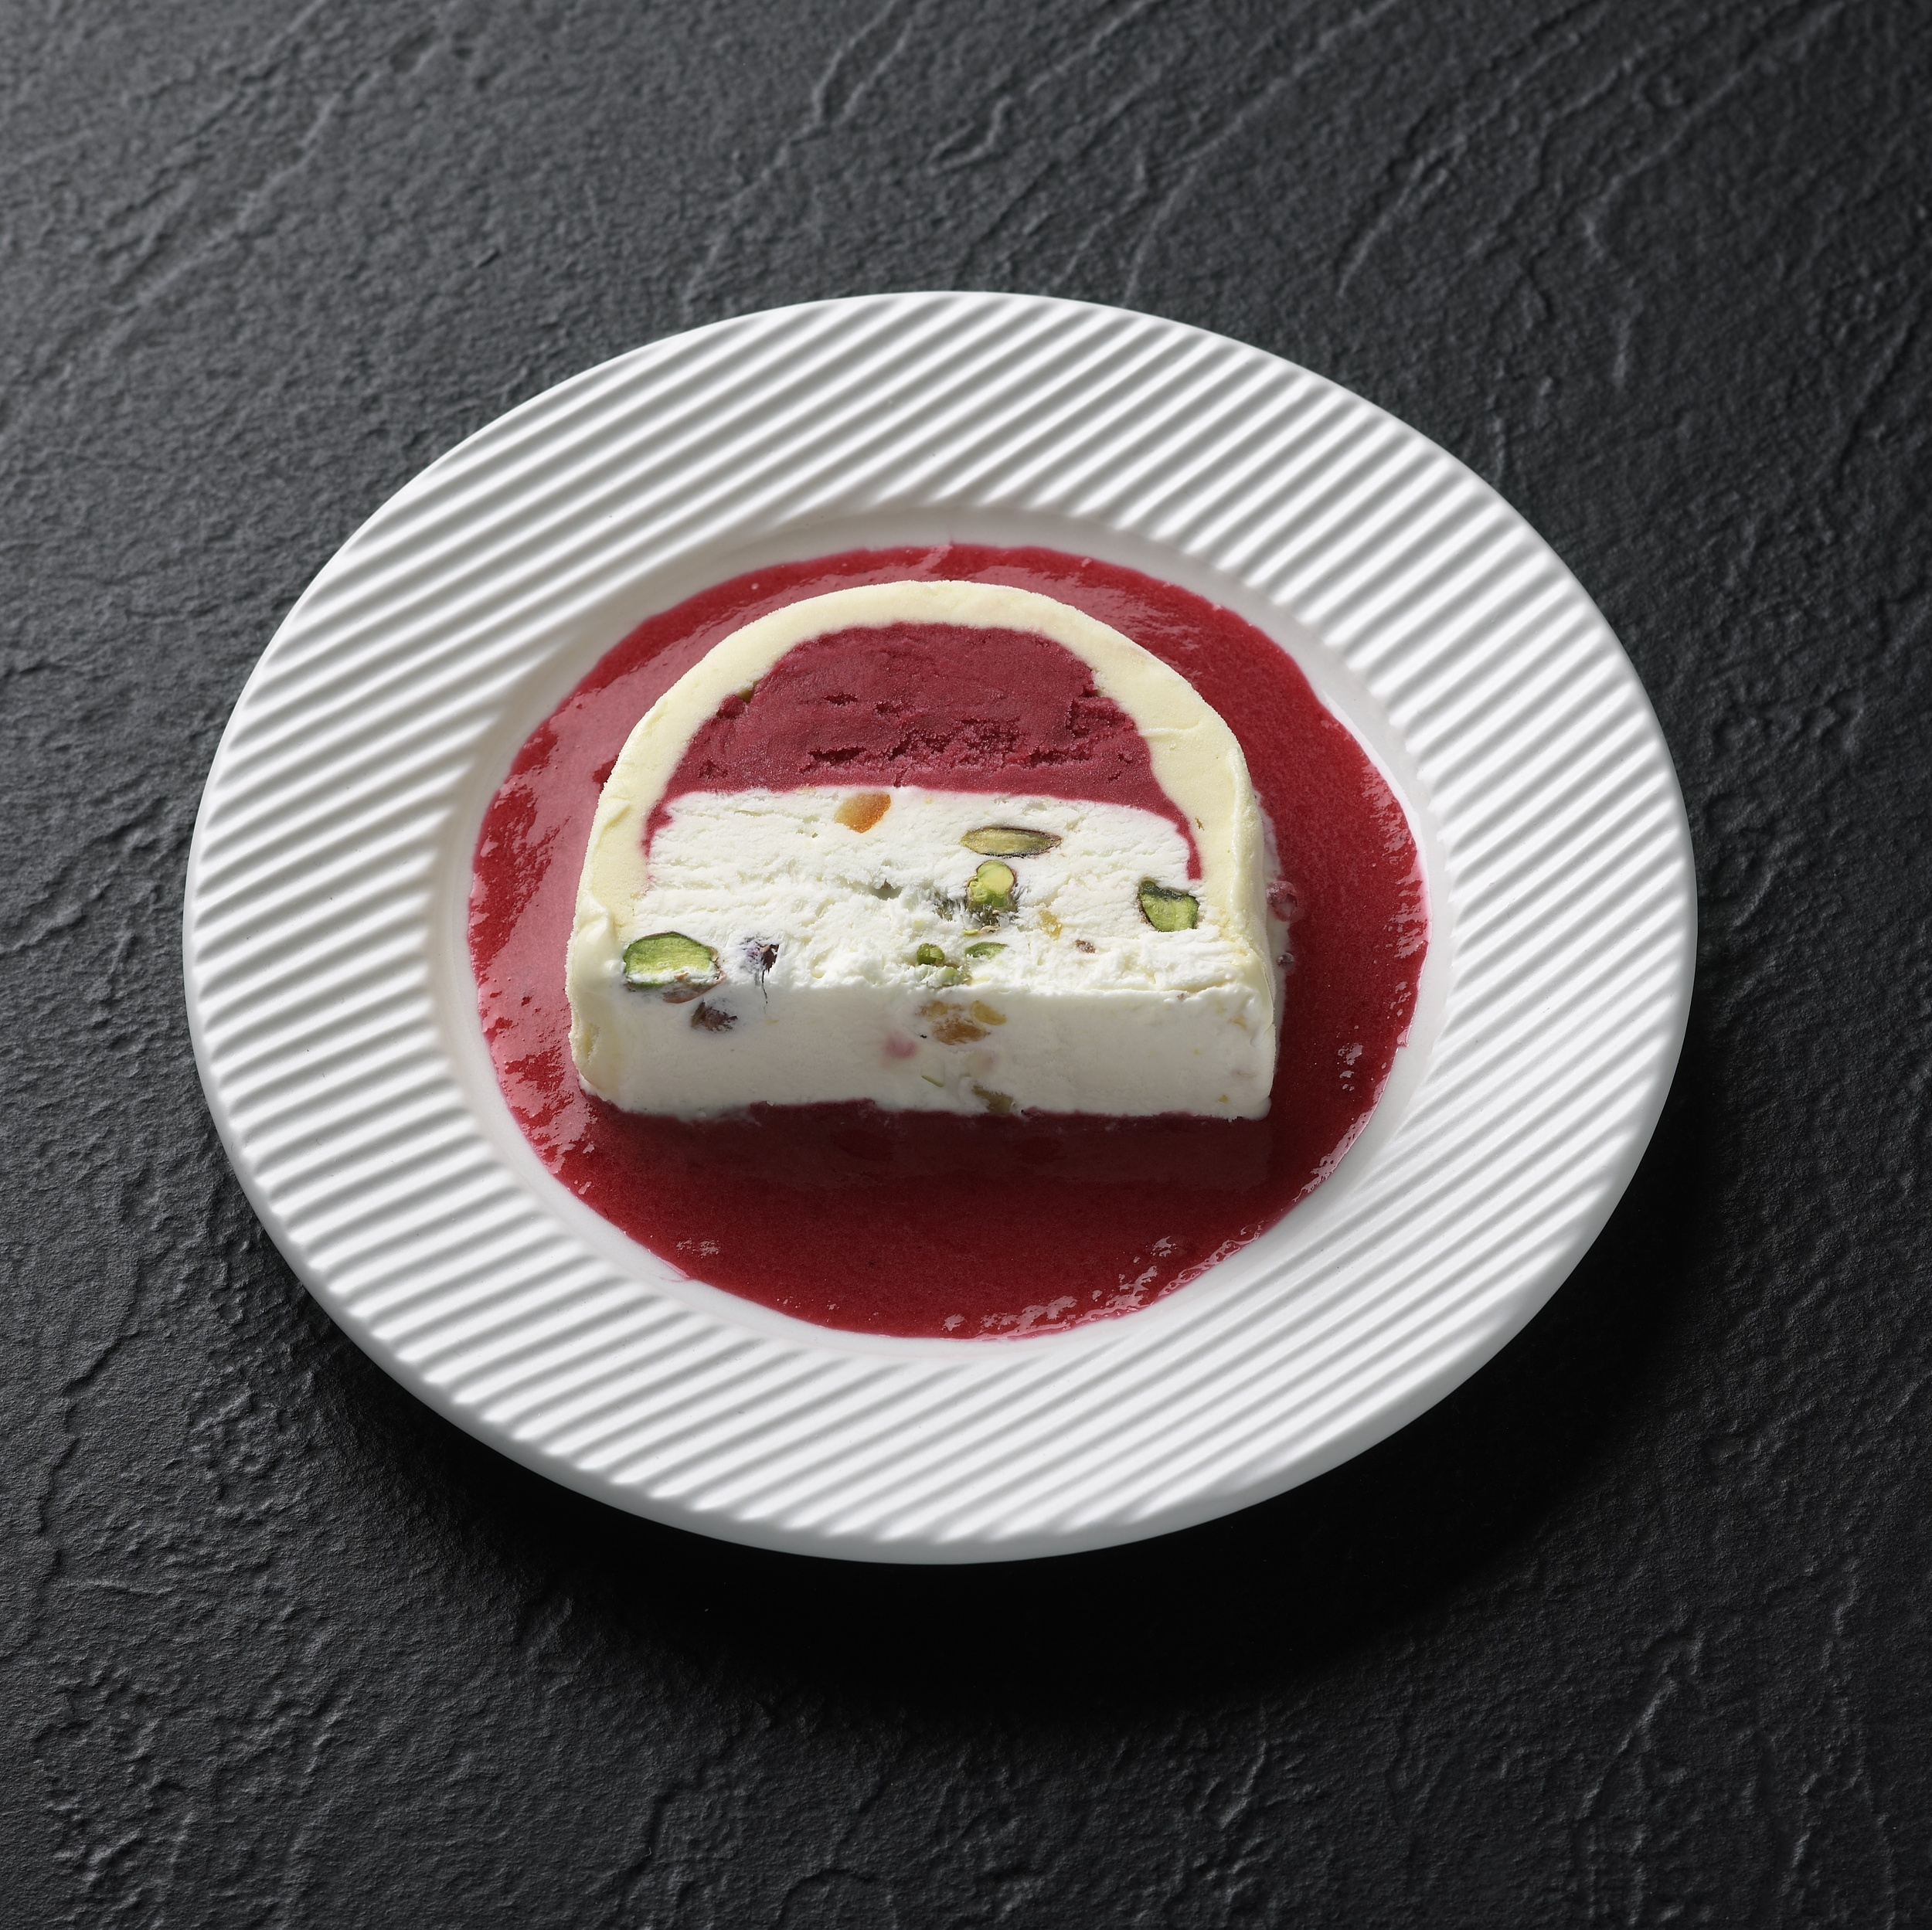 Cassata with Milanese Vanilla, Raspberry sorbet, whipped cream and candied pistachios